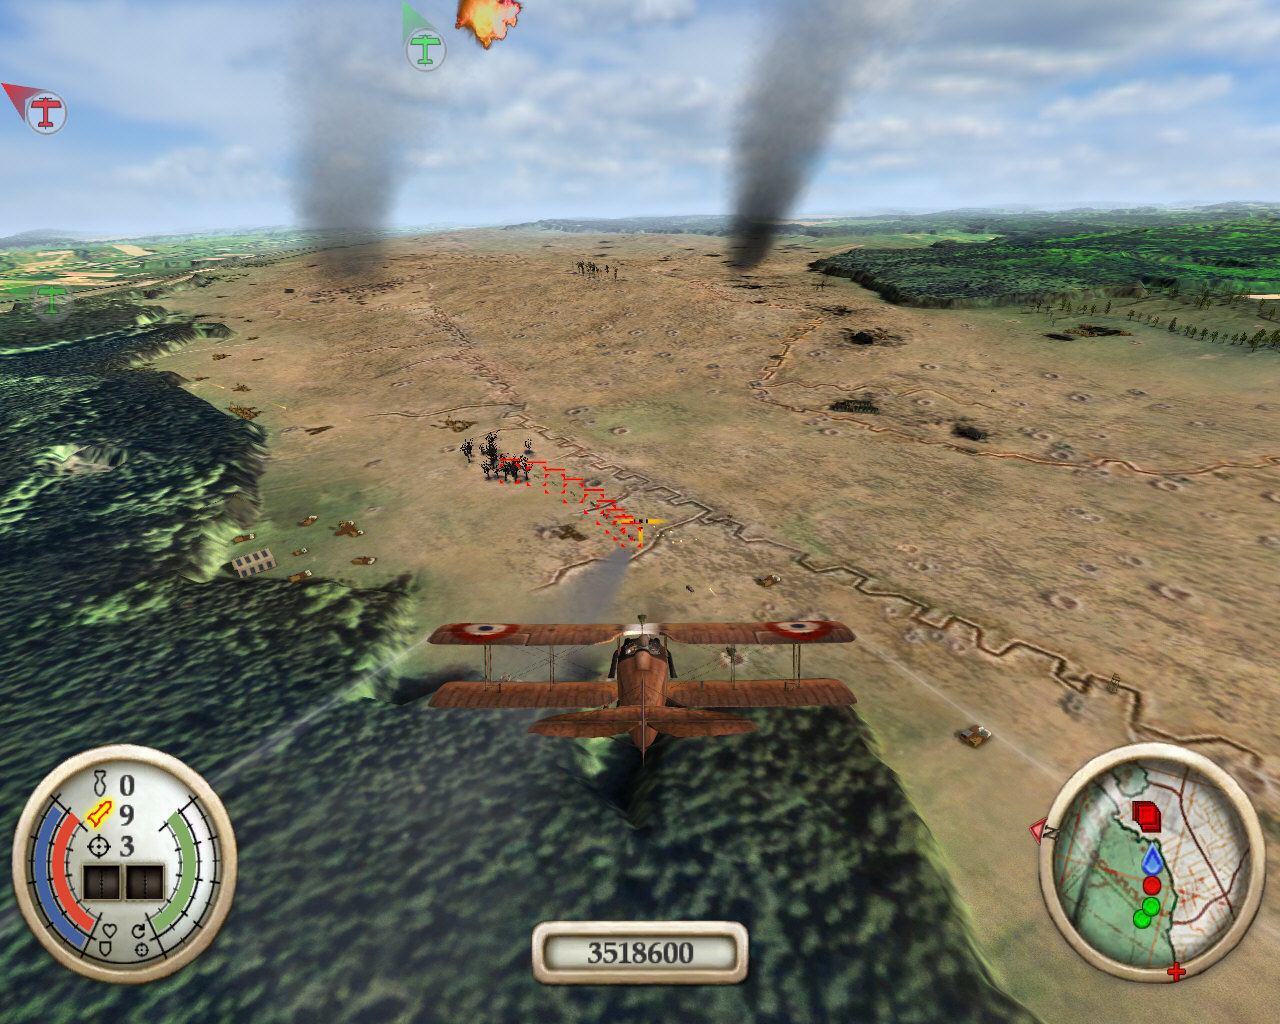 Wings of War Windows Ground targets up ahead!